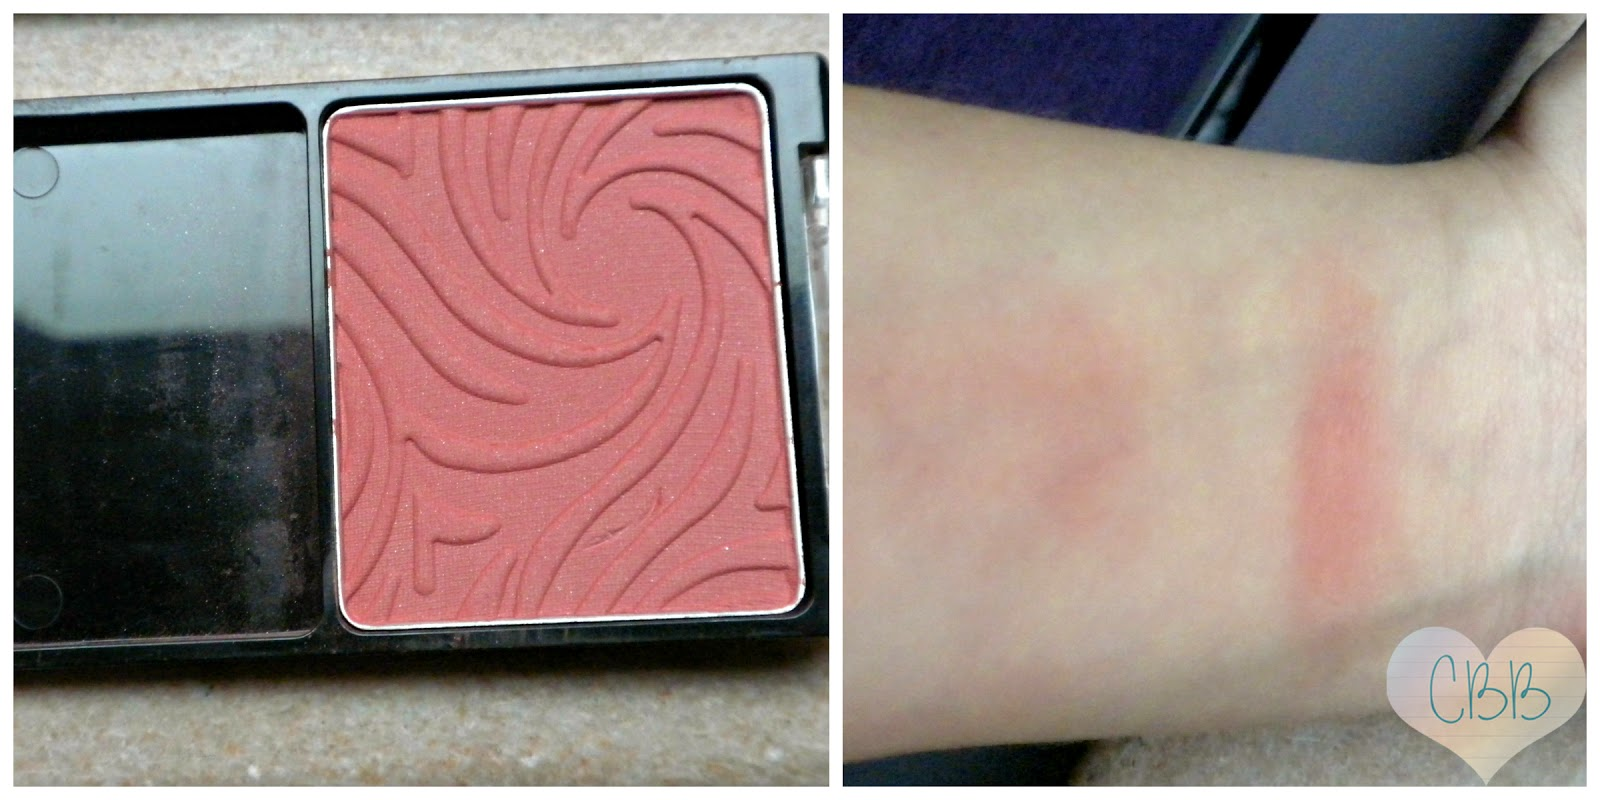 WET 'N WILD Color Icon Blush in Mellow Wine ($3 for .14oz)